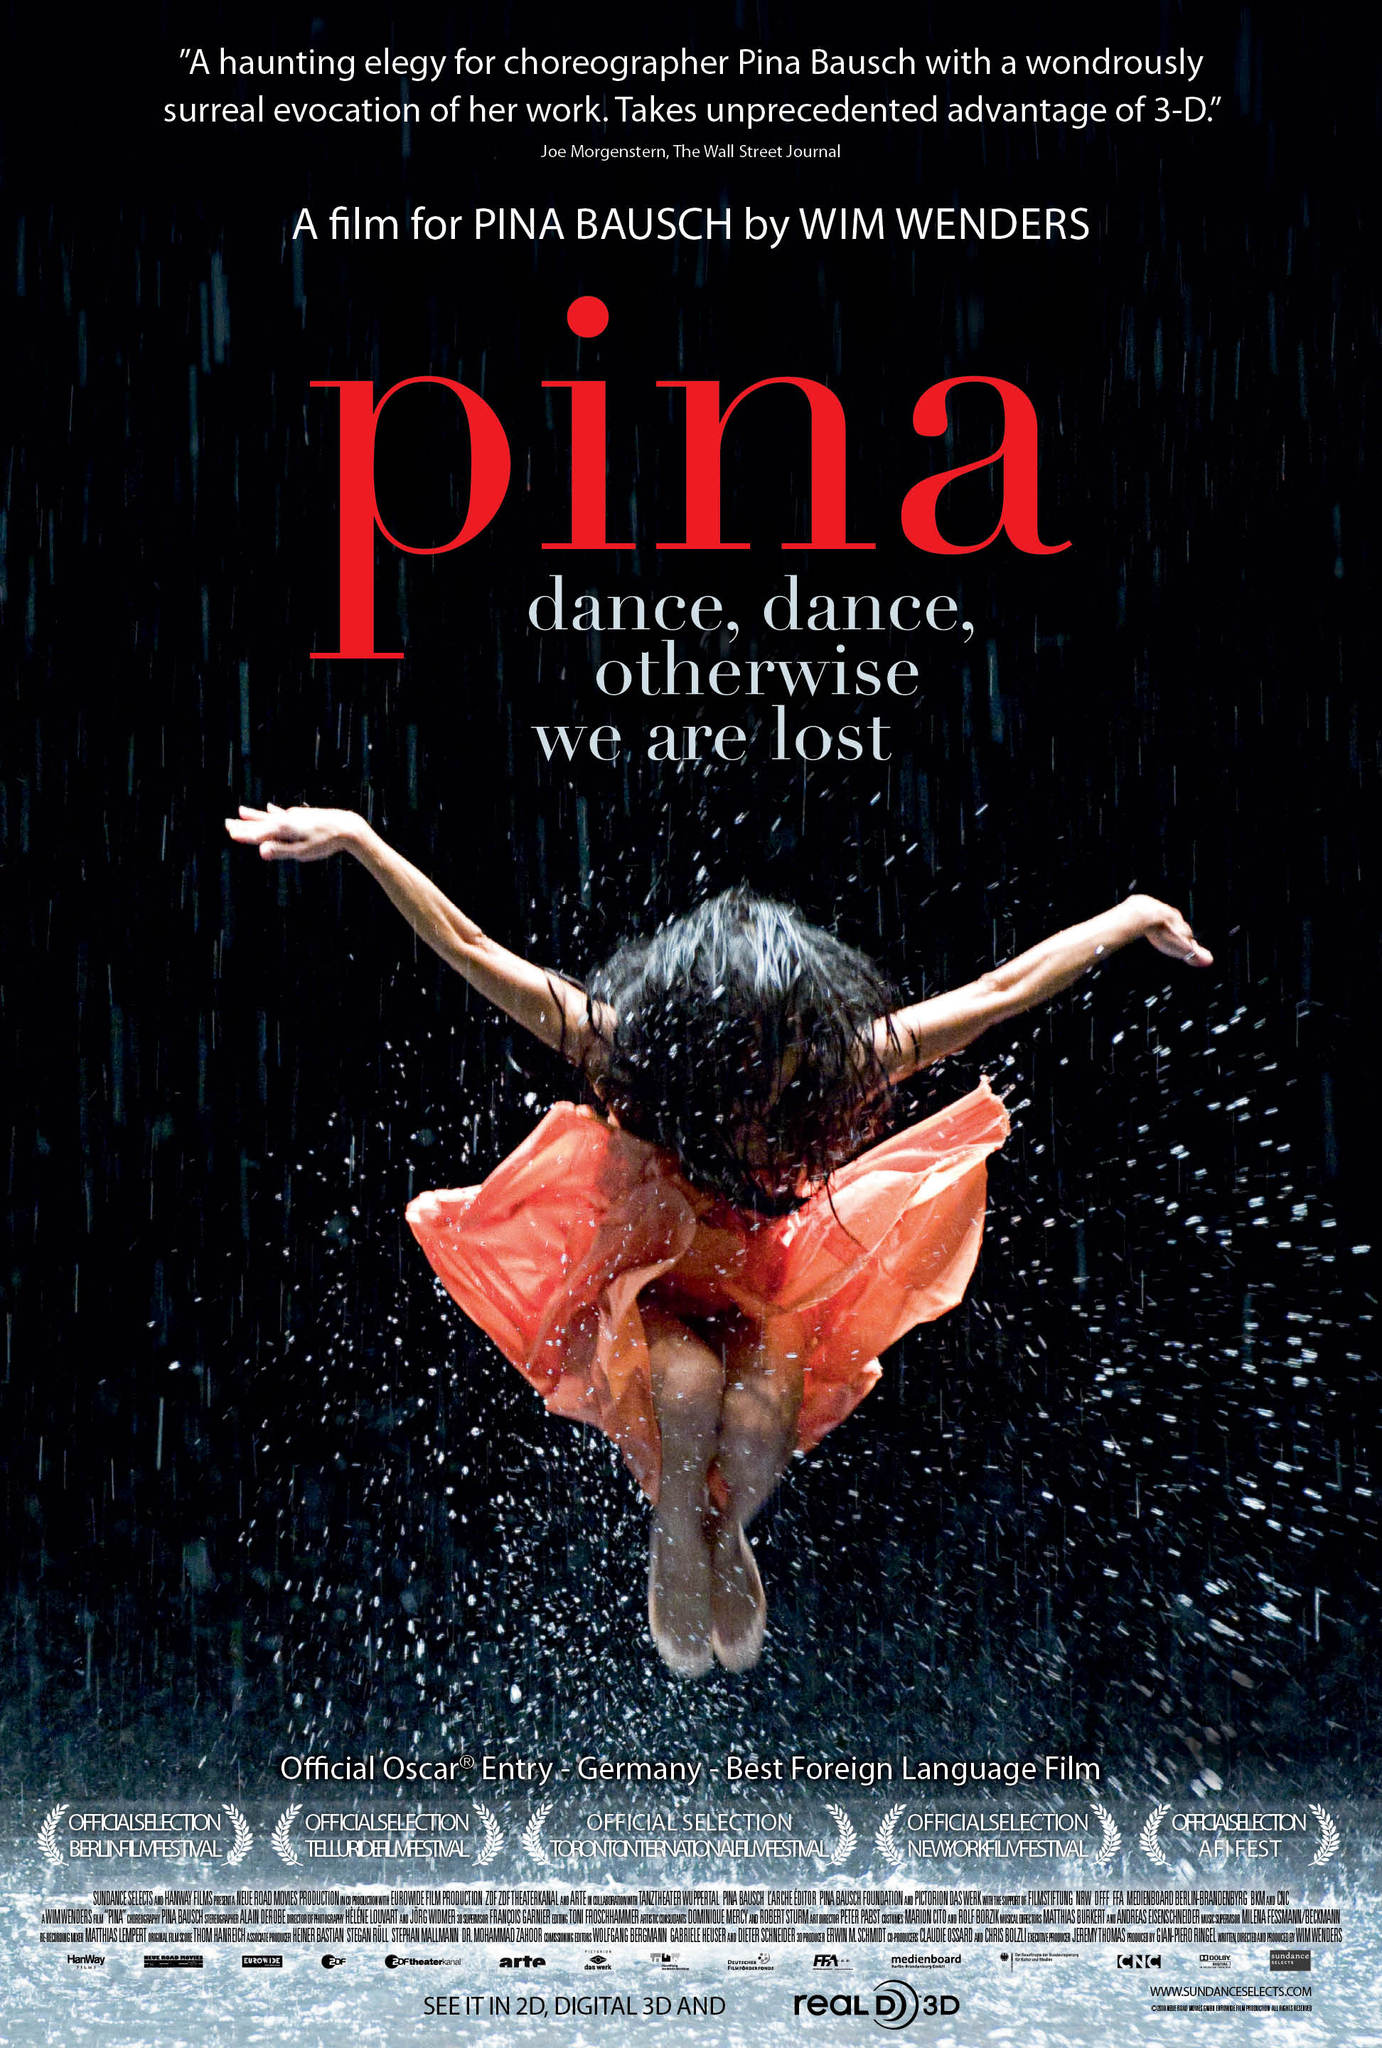 Film poster for Pina features a dramatic lit dancer mid-leap with arms spread wide against a black backdrop, surrounded by lightly falling water